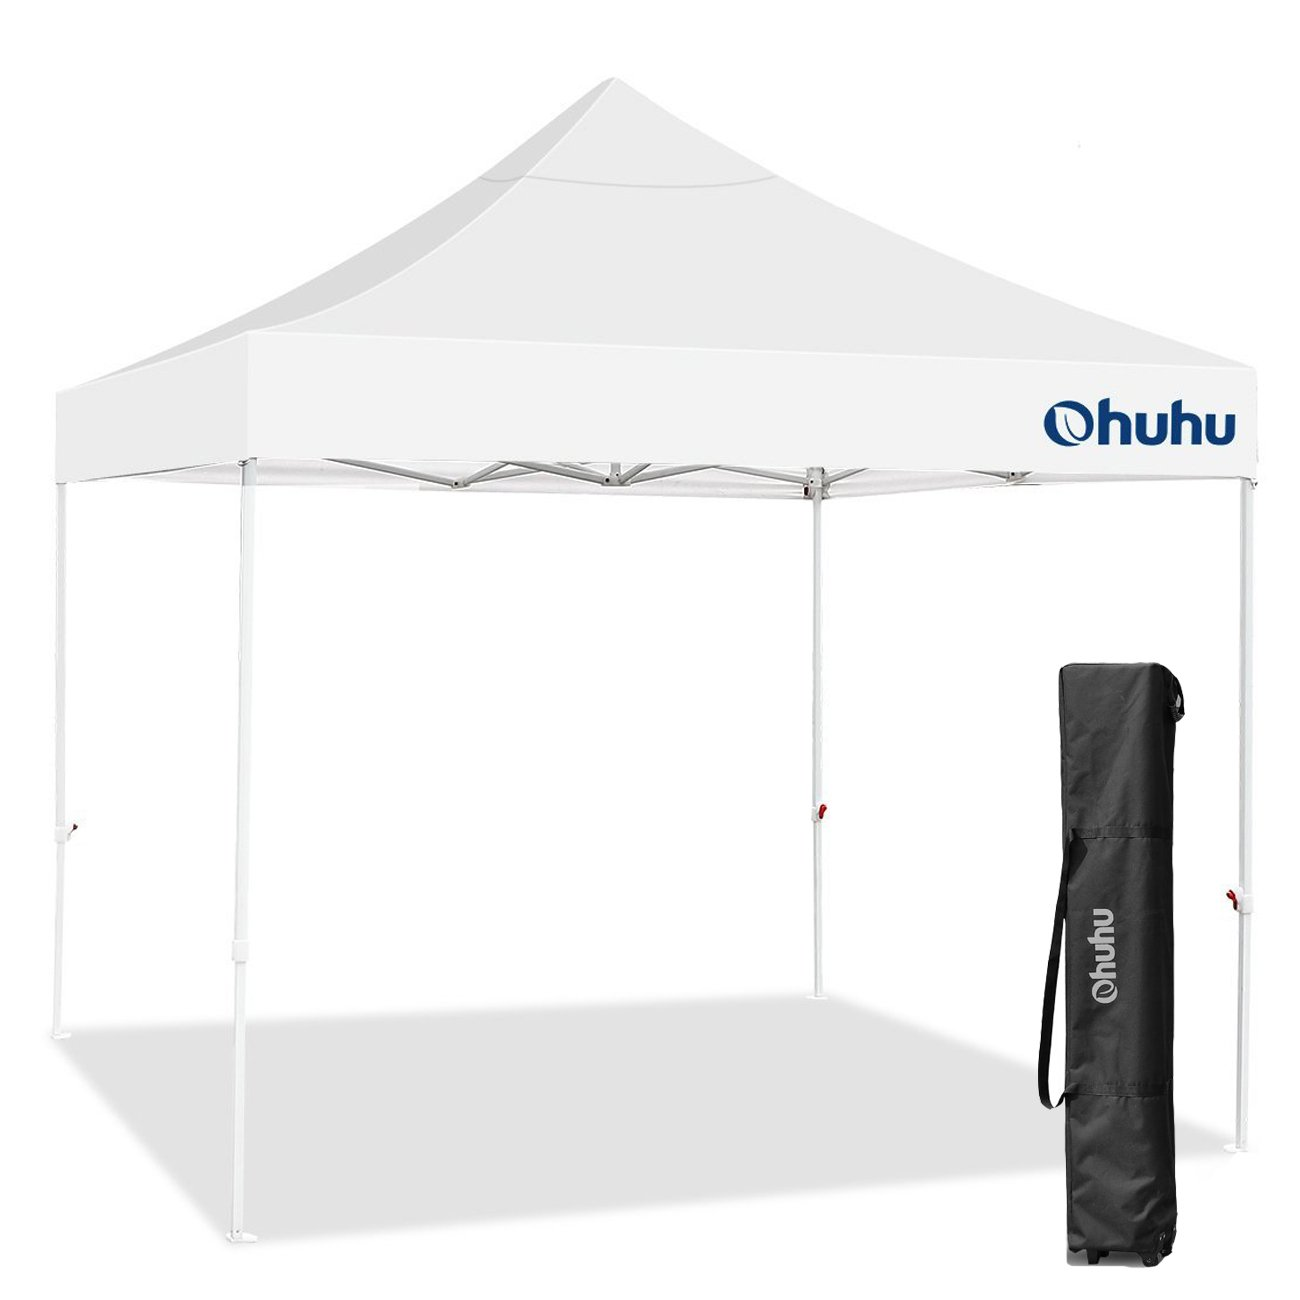 Ohuhu Pop-Up Canopy Tent Instant Shelter with Wheeled Carry Bag for Outdoor Activities Events, 10 by 10 Ft, White by Ohuhu